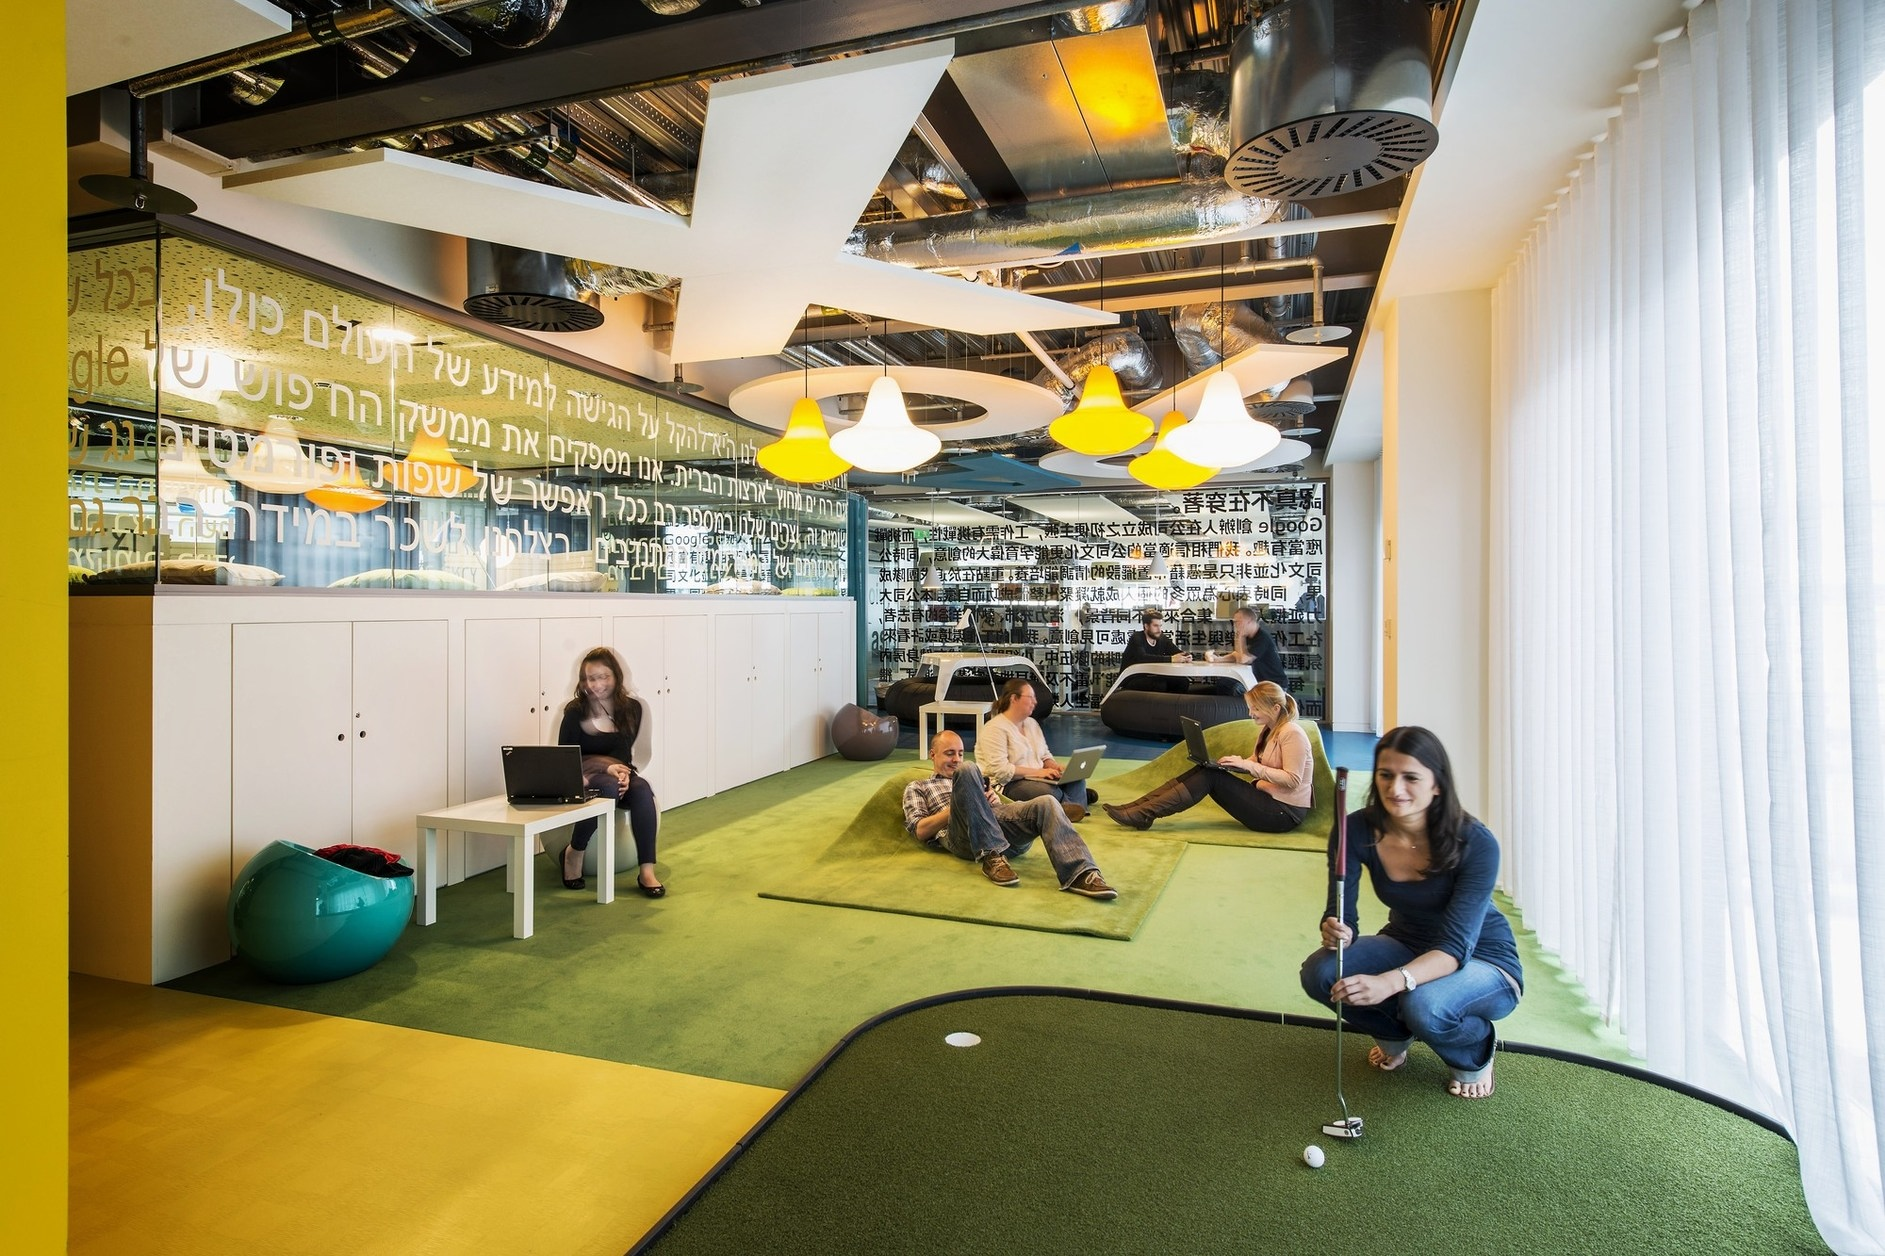 Google campus dublin by camenzind evolution henry j